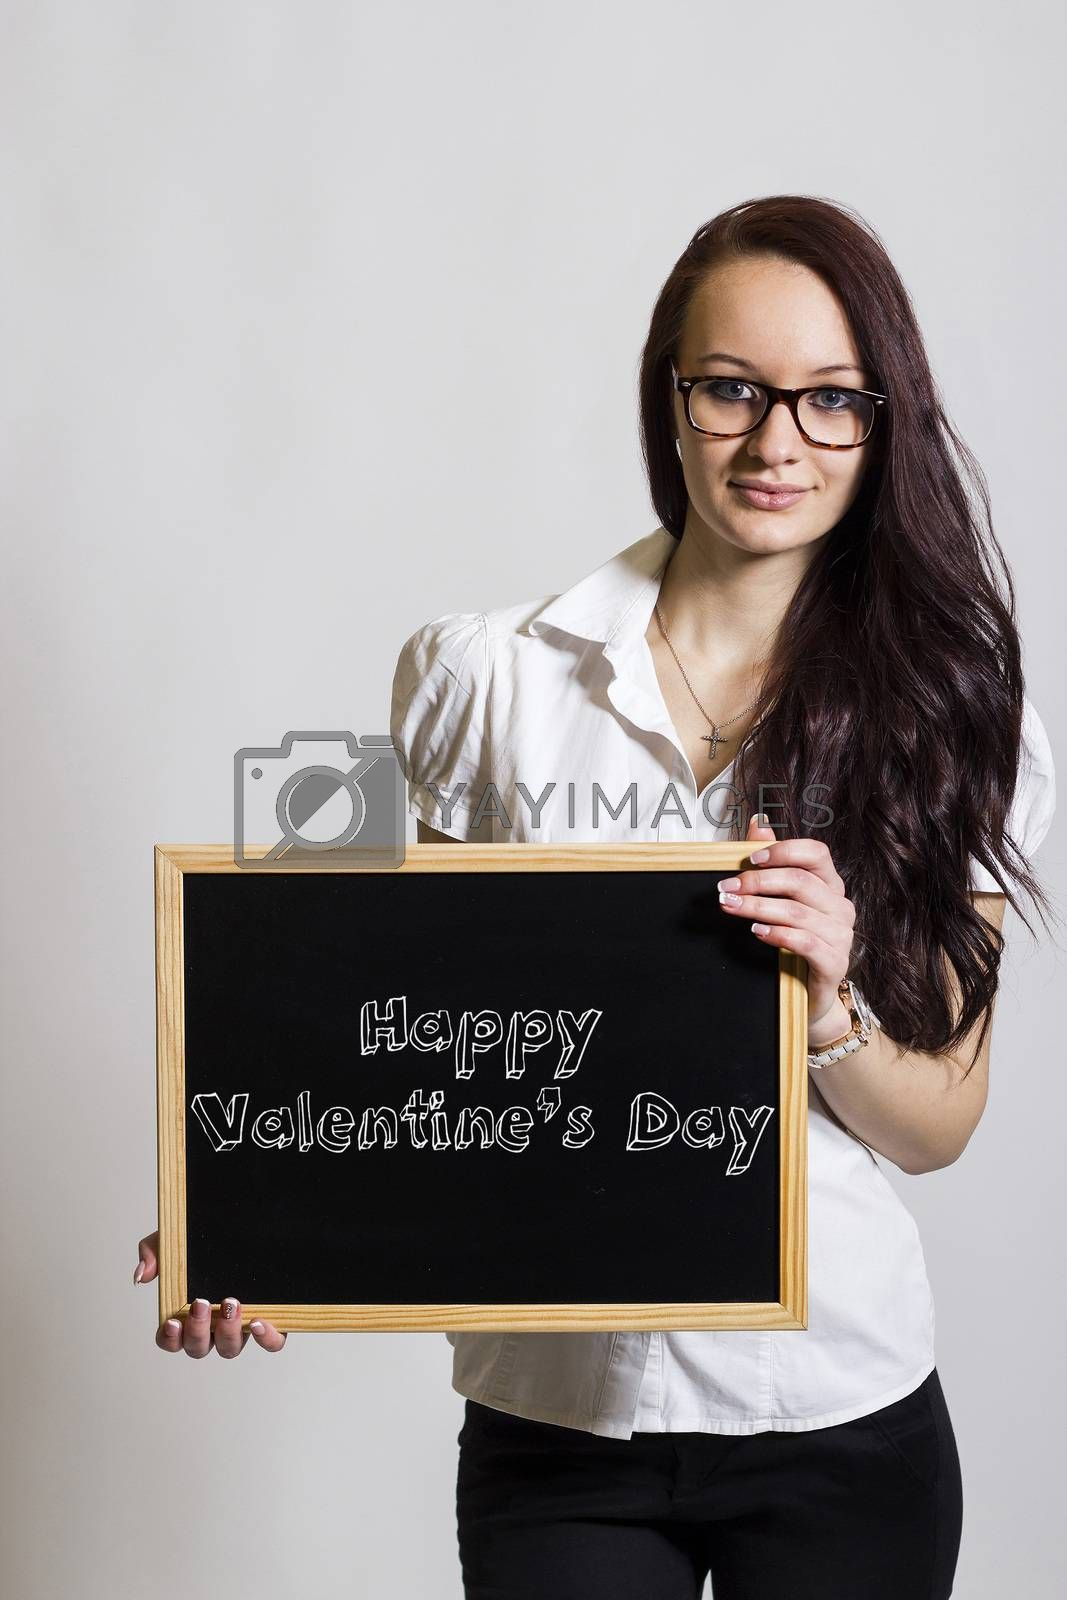 Happy Valentine's Day - Young businesswoman holding chalkboard - vertical image